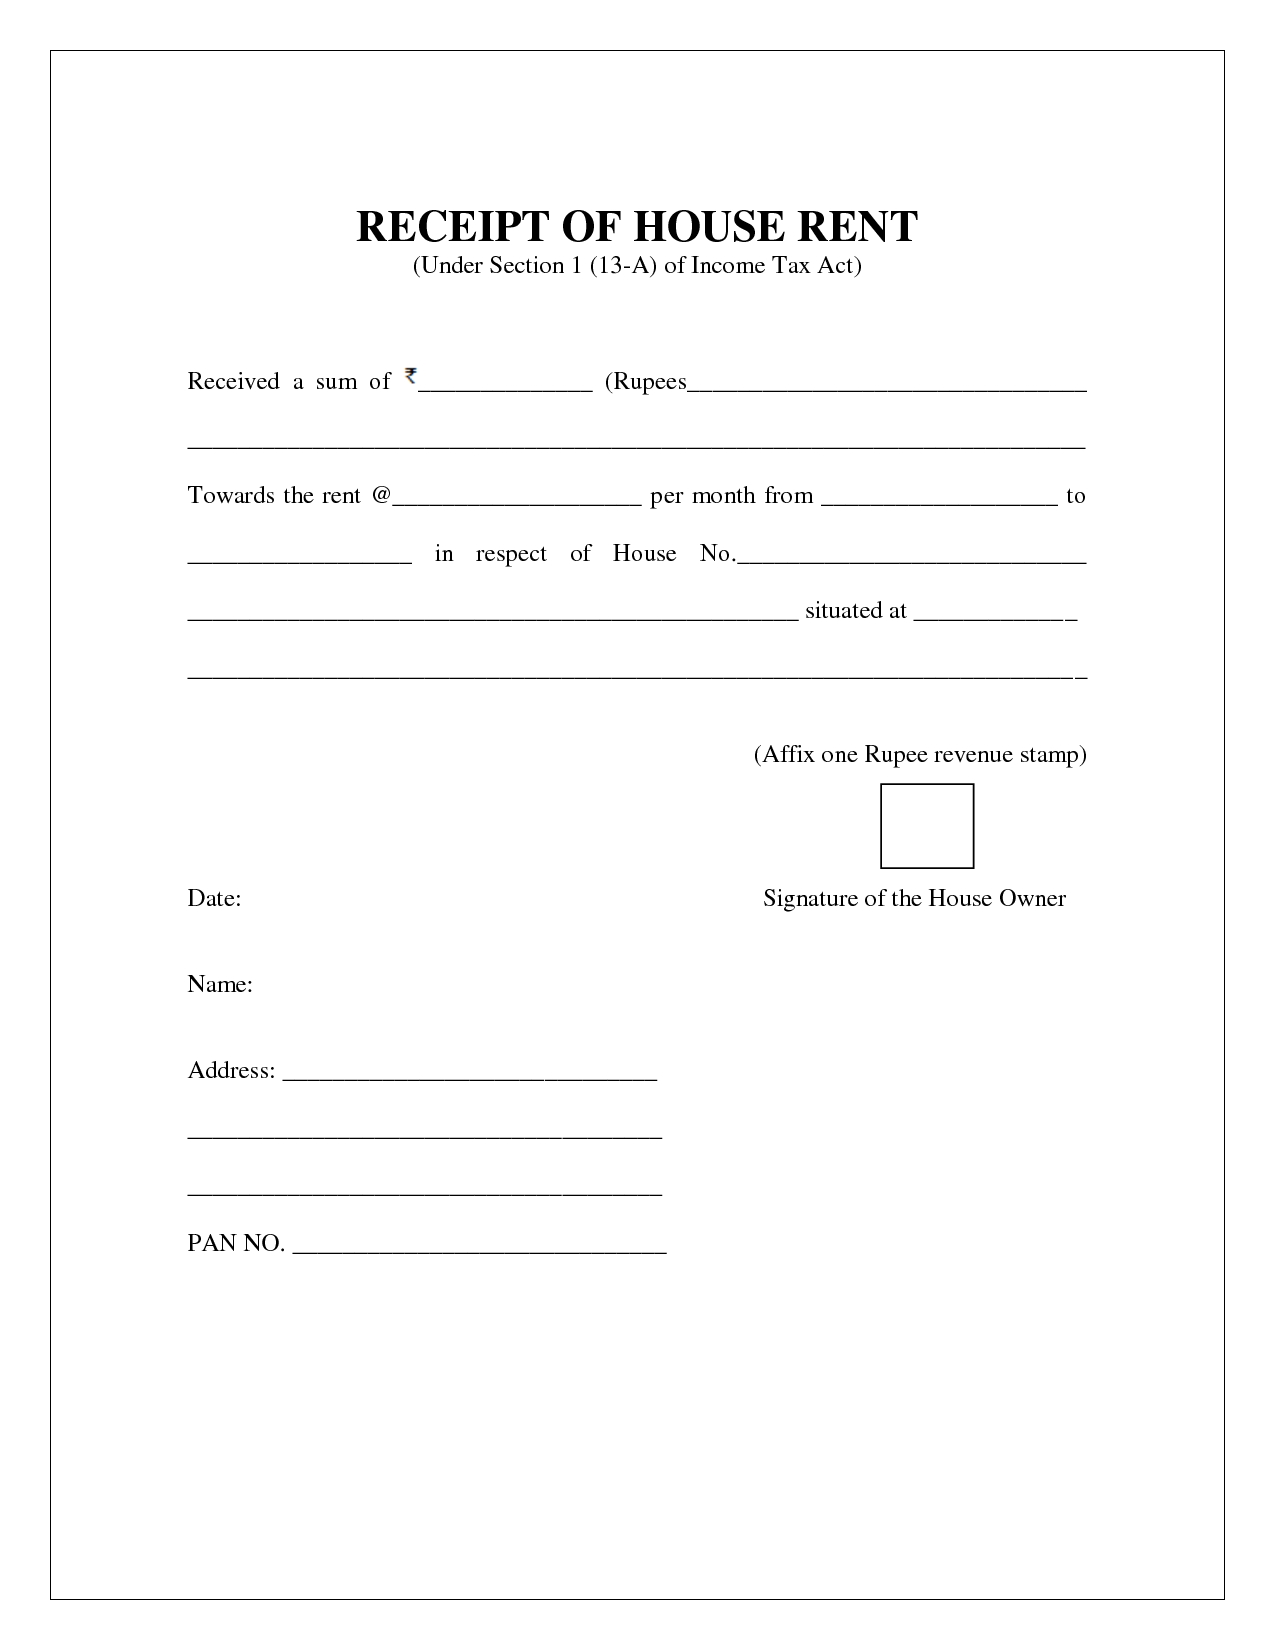 Free House Rental Invoice House Rent Receipt Https 75maingroup Com Rent Agreement Format Receipt Template Invoice Template Word Rental Agreement Templates